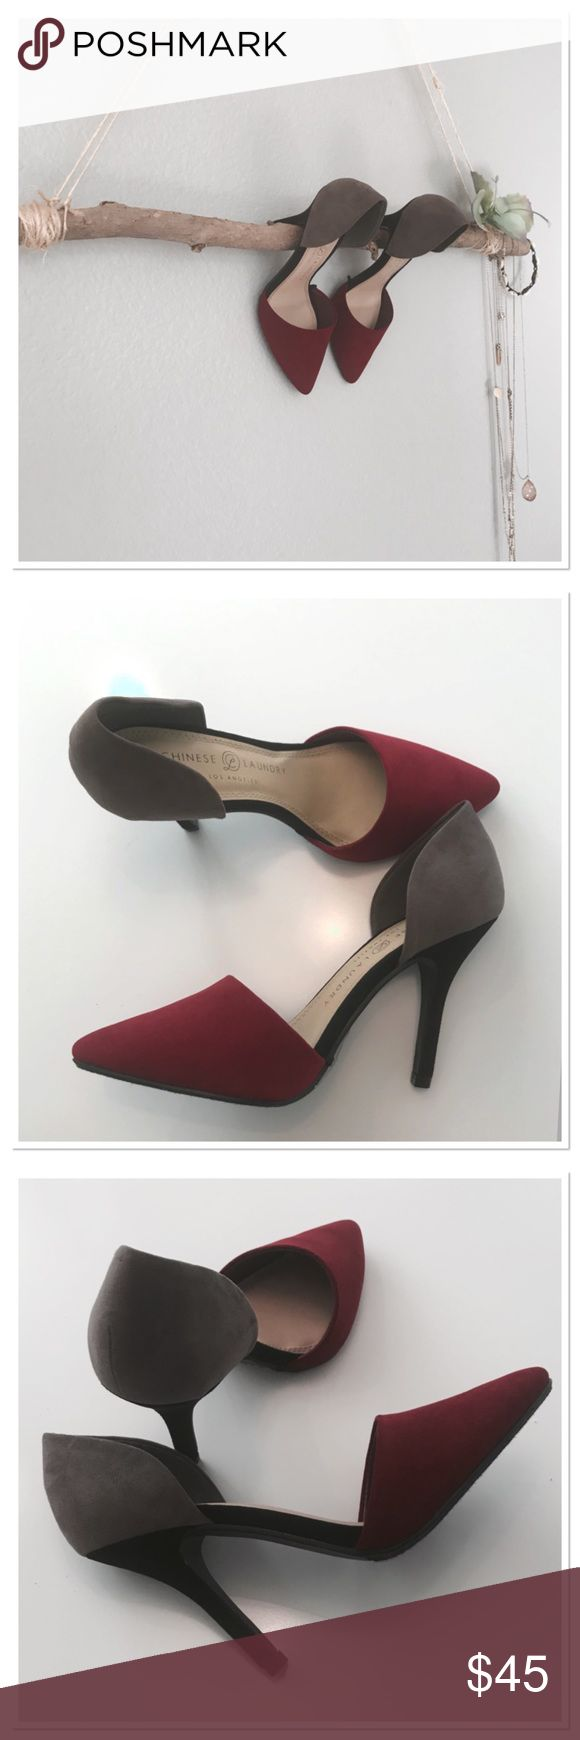 NWOB Chinese Laundry two tone heels Absolutely stunning! Wish those would fit me. Beautiful light burgundy and taupe . Black 4 in heel. Chinese Laundry Shoes Heels